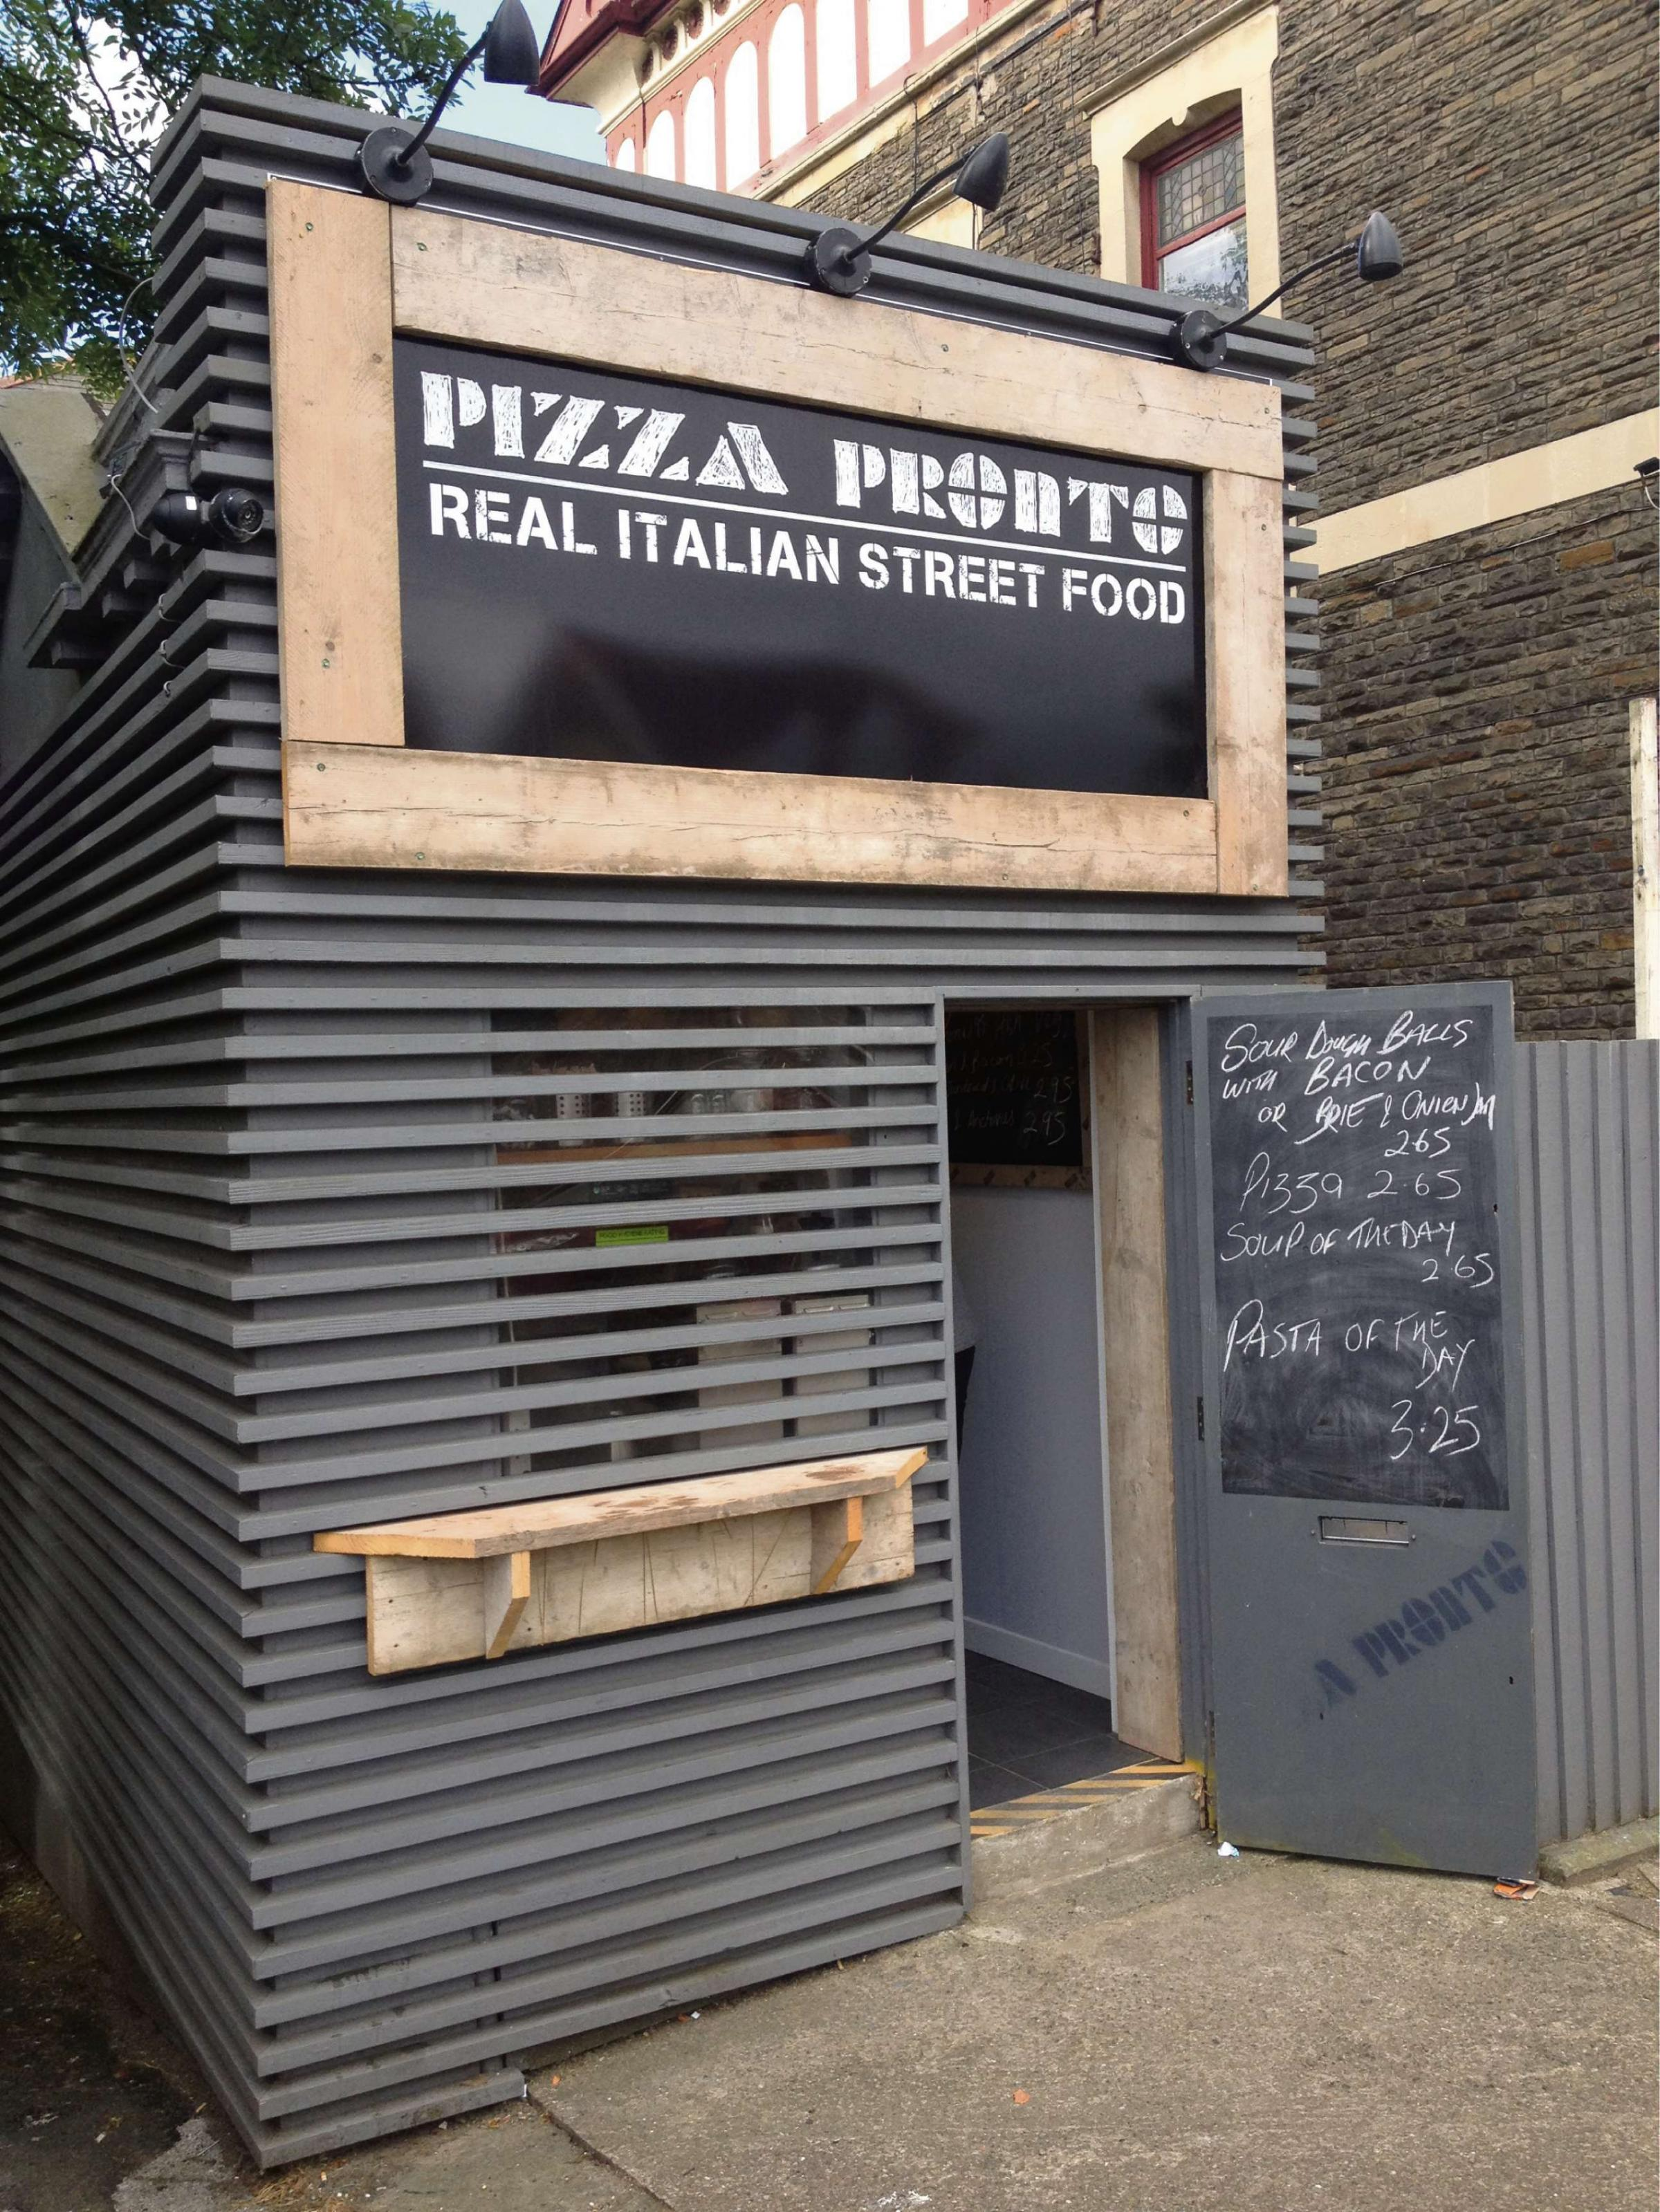 Councillors brand pizza outlet an 'eyesore' as owner appeals for support